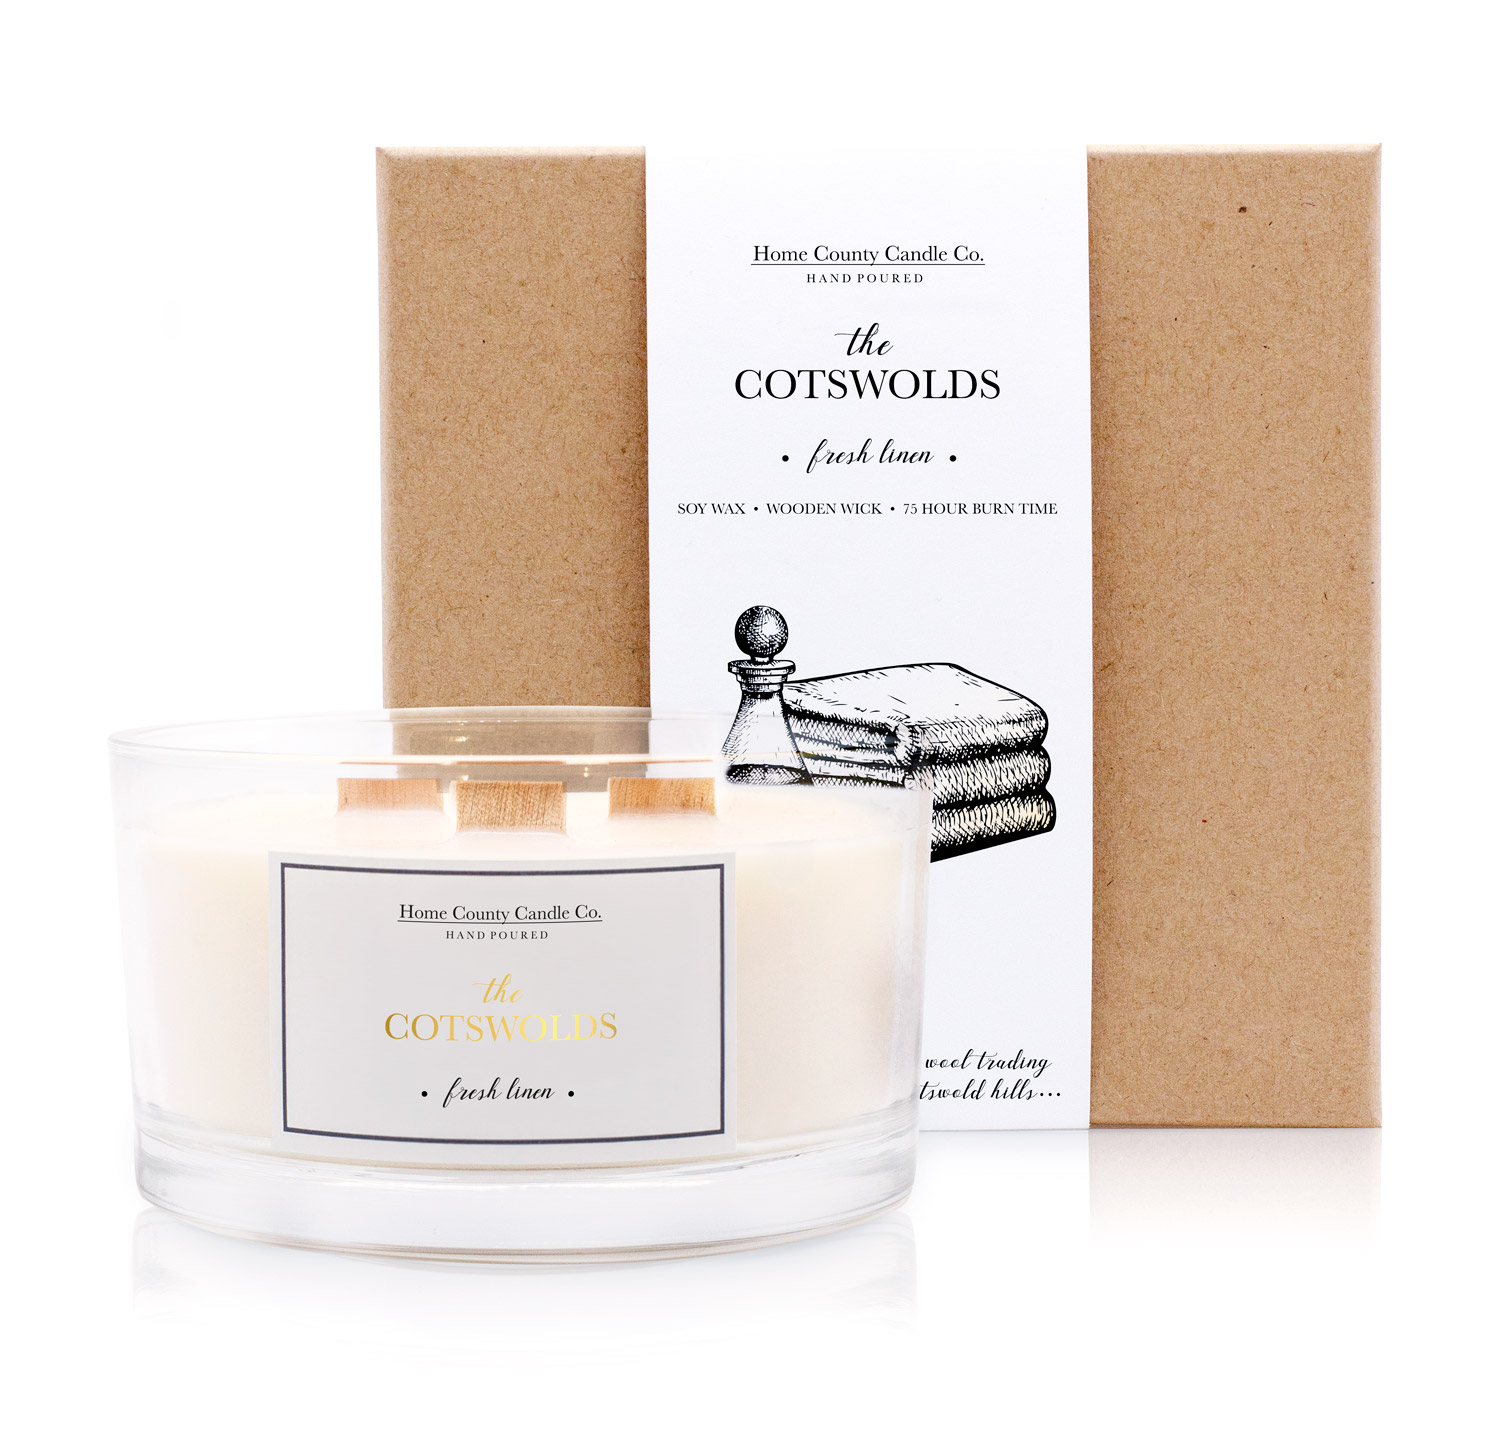 The Cotswolds 3 Wick Soy Candle